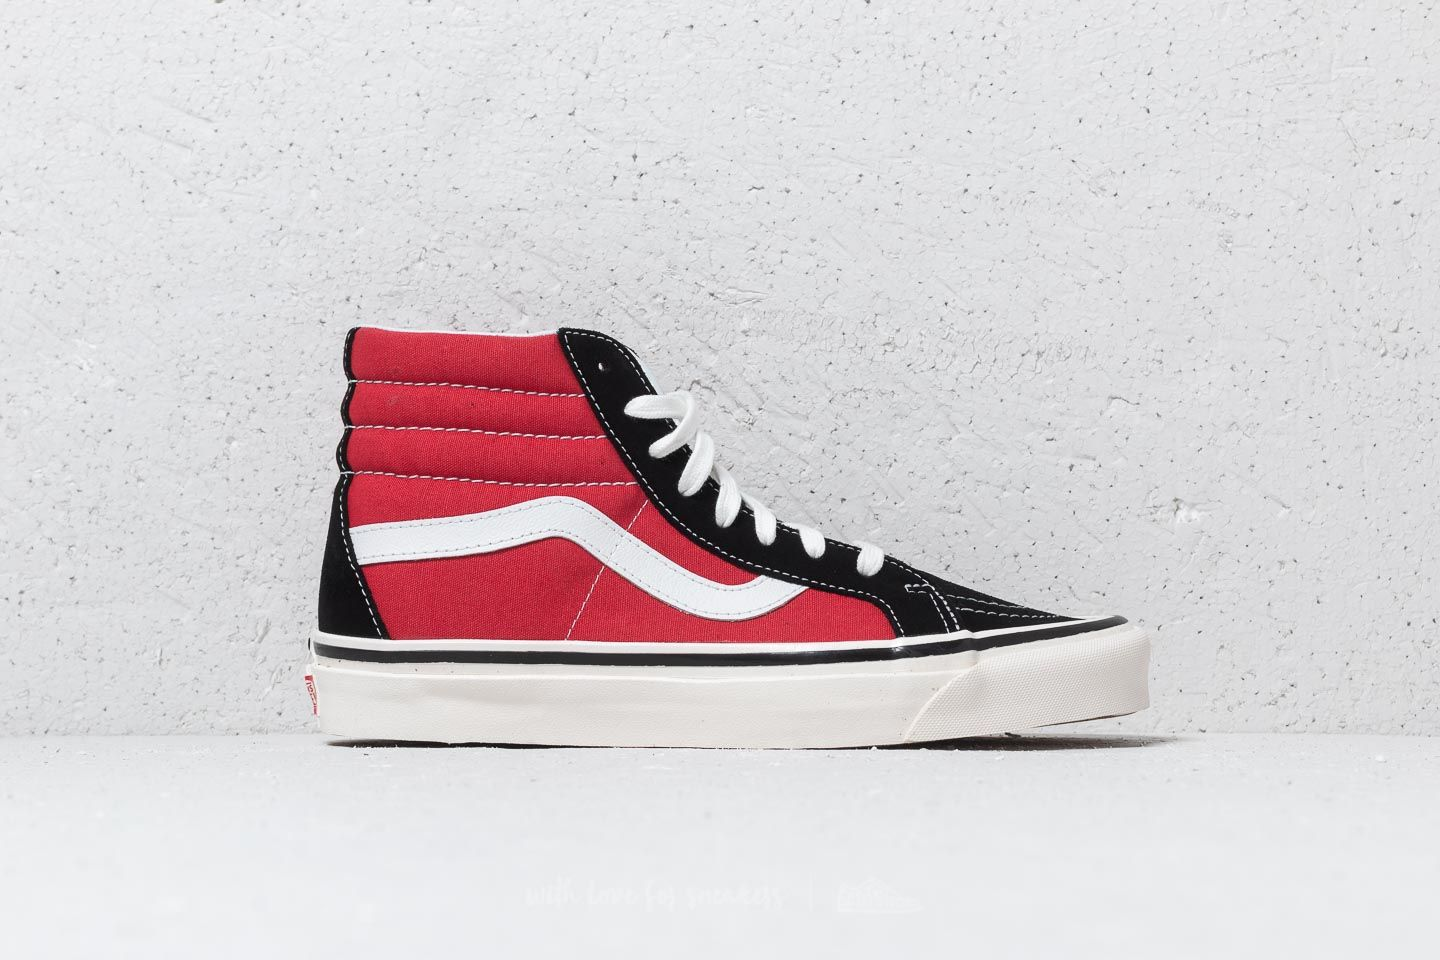 8d42f37812 Vans Sk8-Hi 38 DX (Anaheim Factory) OG Black/ Red | Footshop